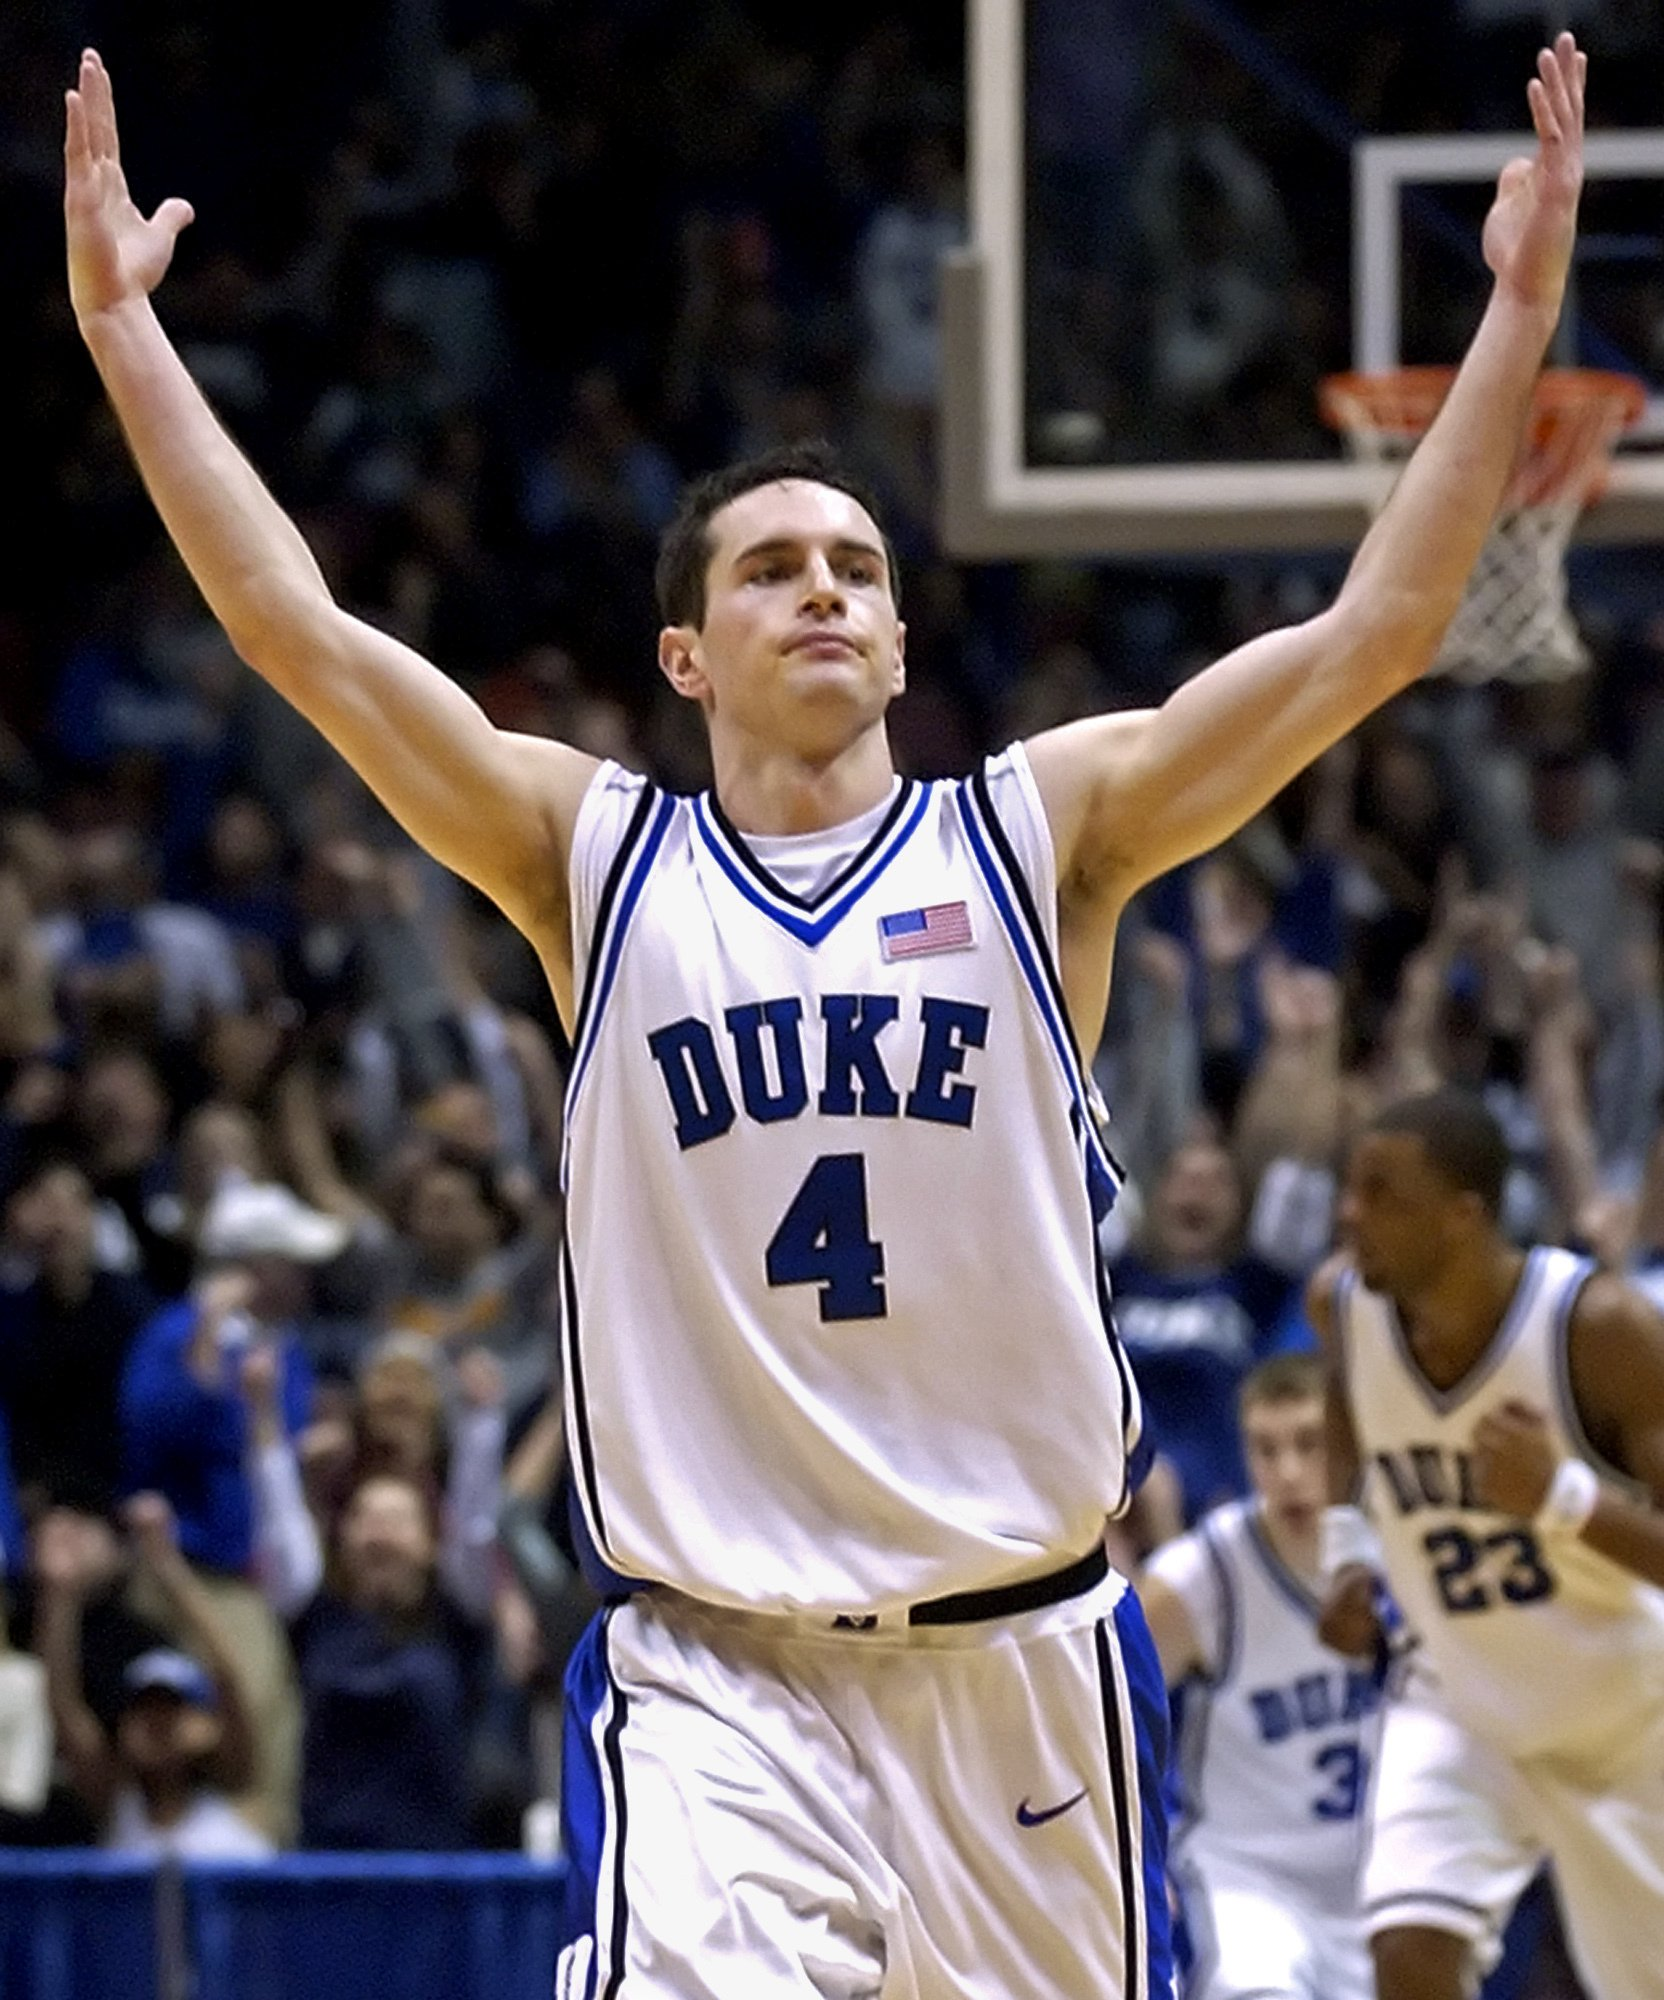 f8b935b65020 Redick joins push to put civility back in college basketball